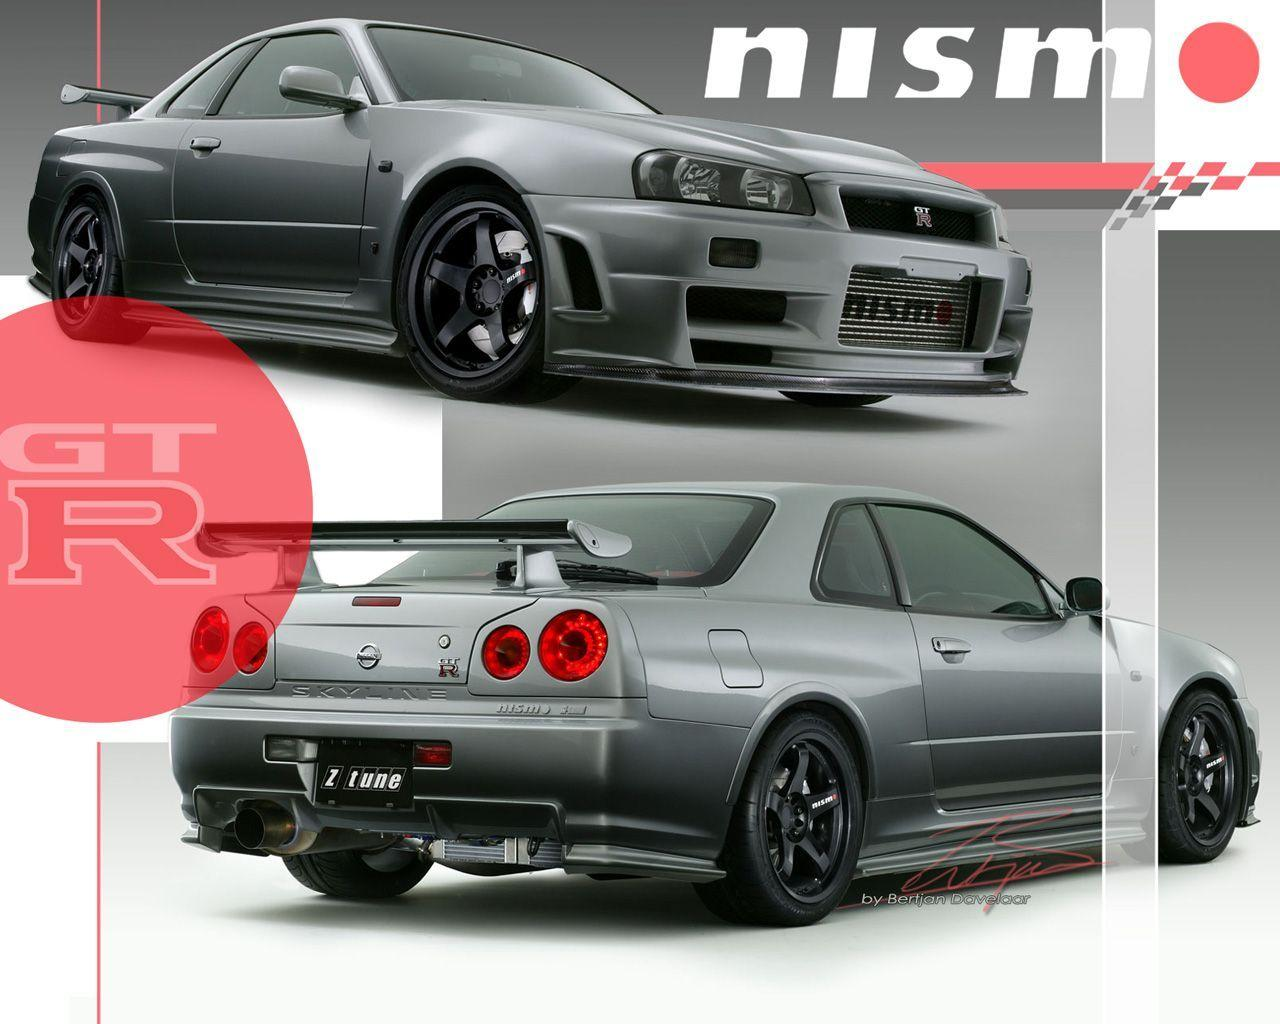 Nissan Gtr Nismo Tuning Awesome The Vehicles Wallpapers Named